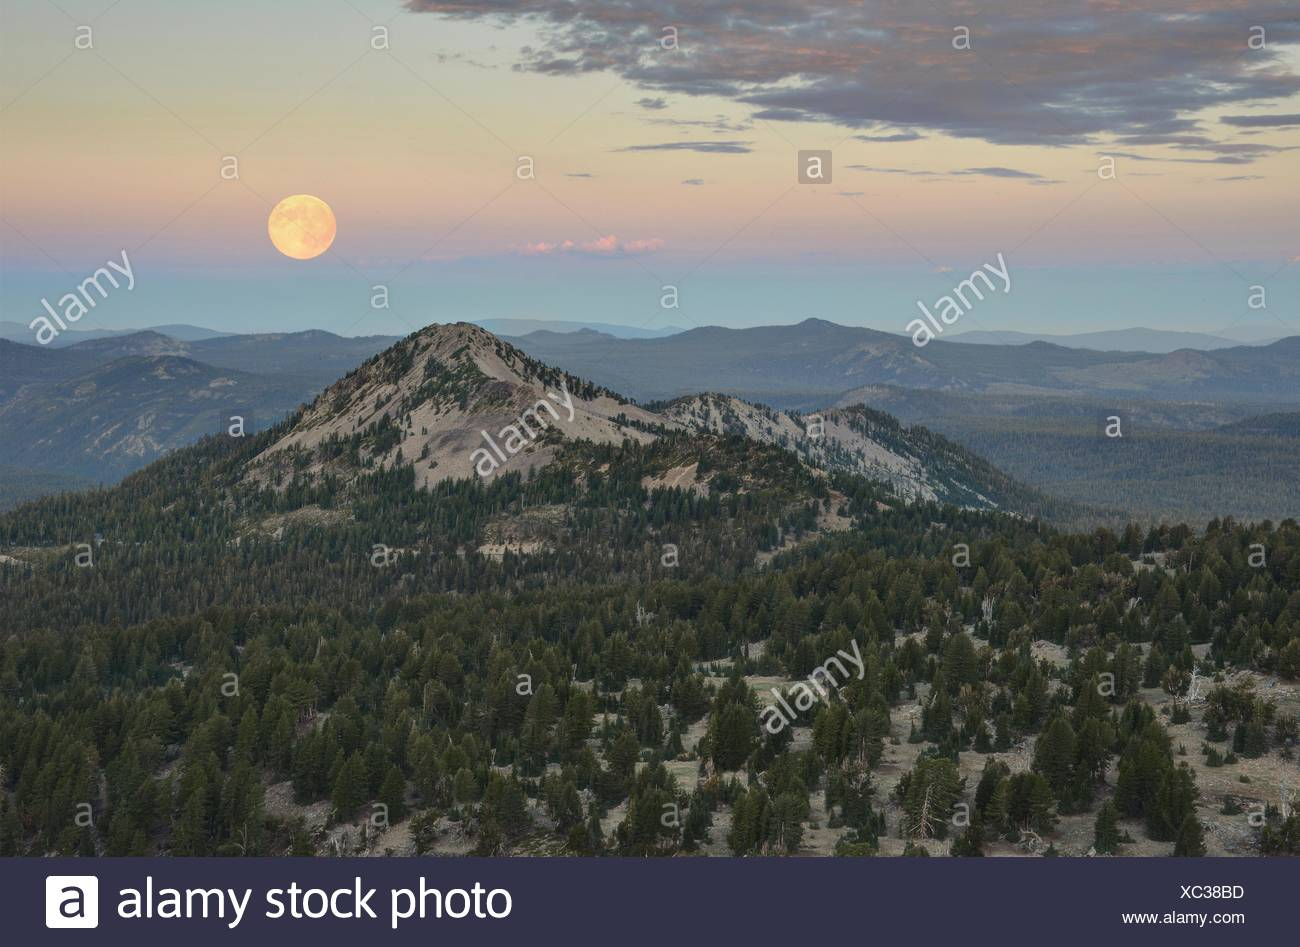 USA, California, Lassen Volcanic National Park, Rising of Moon Over Reading Peak - Stock Image